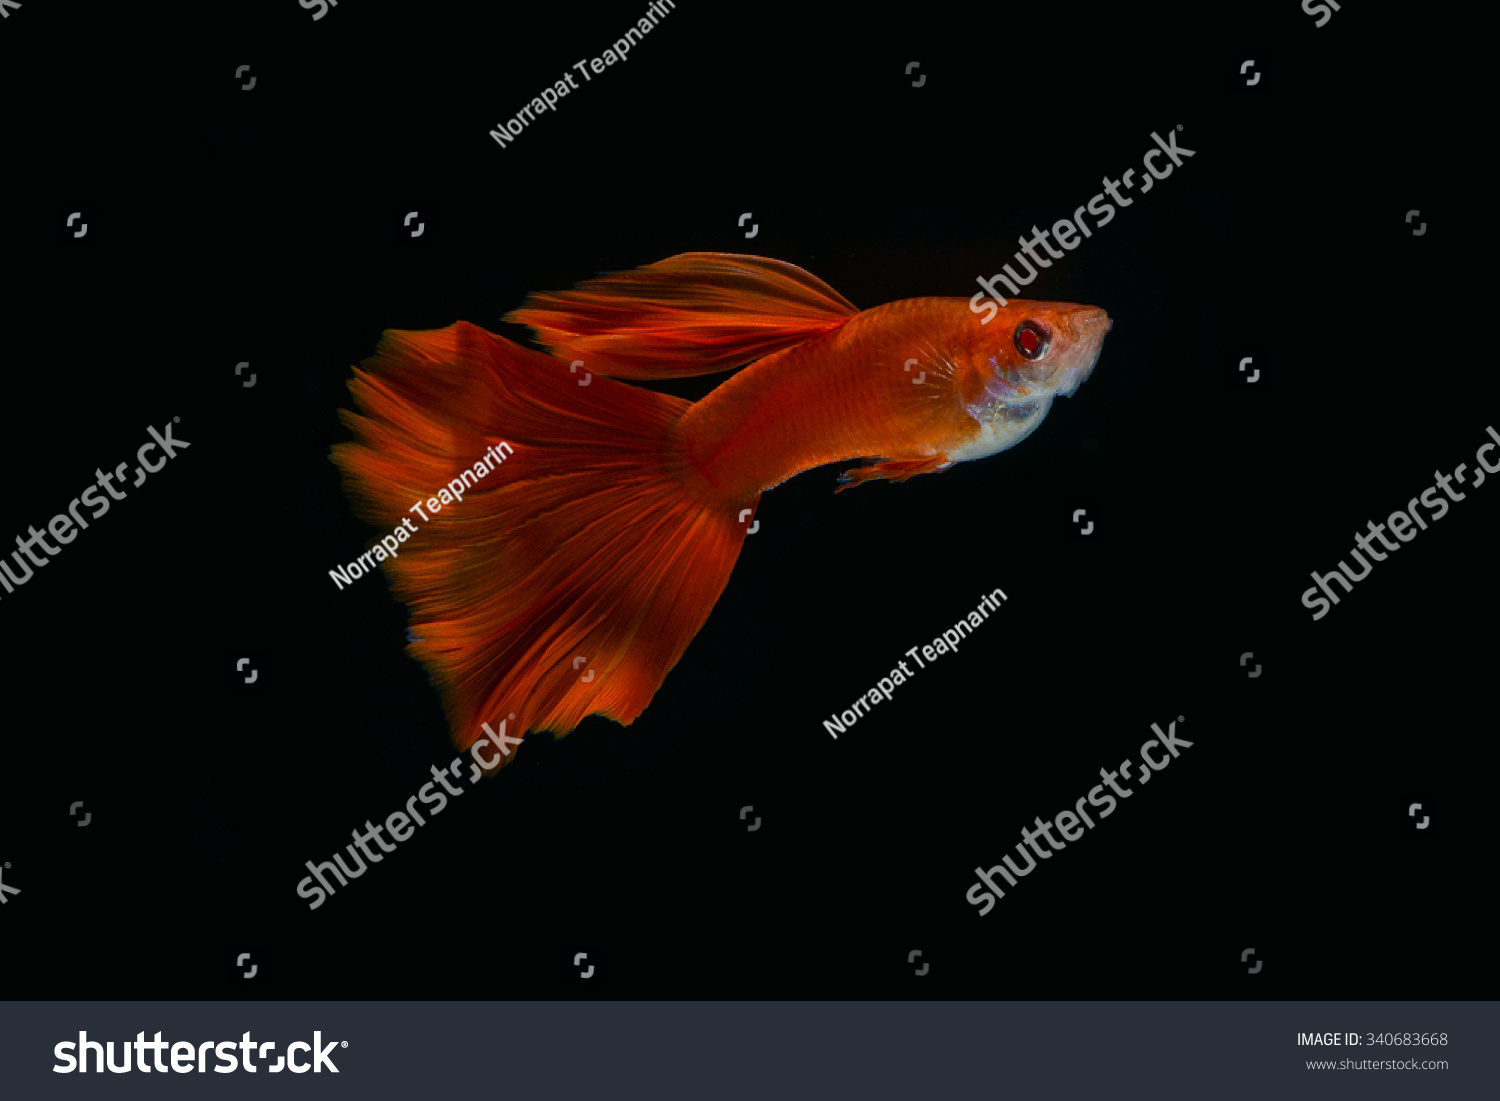 Royalty-free Super Red Guppy,Guppy Multi Colored… #340683668 Stock ...